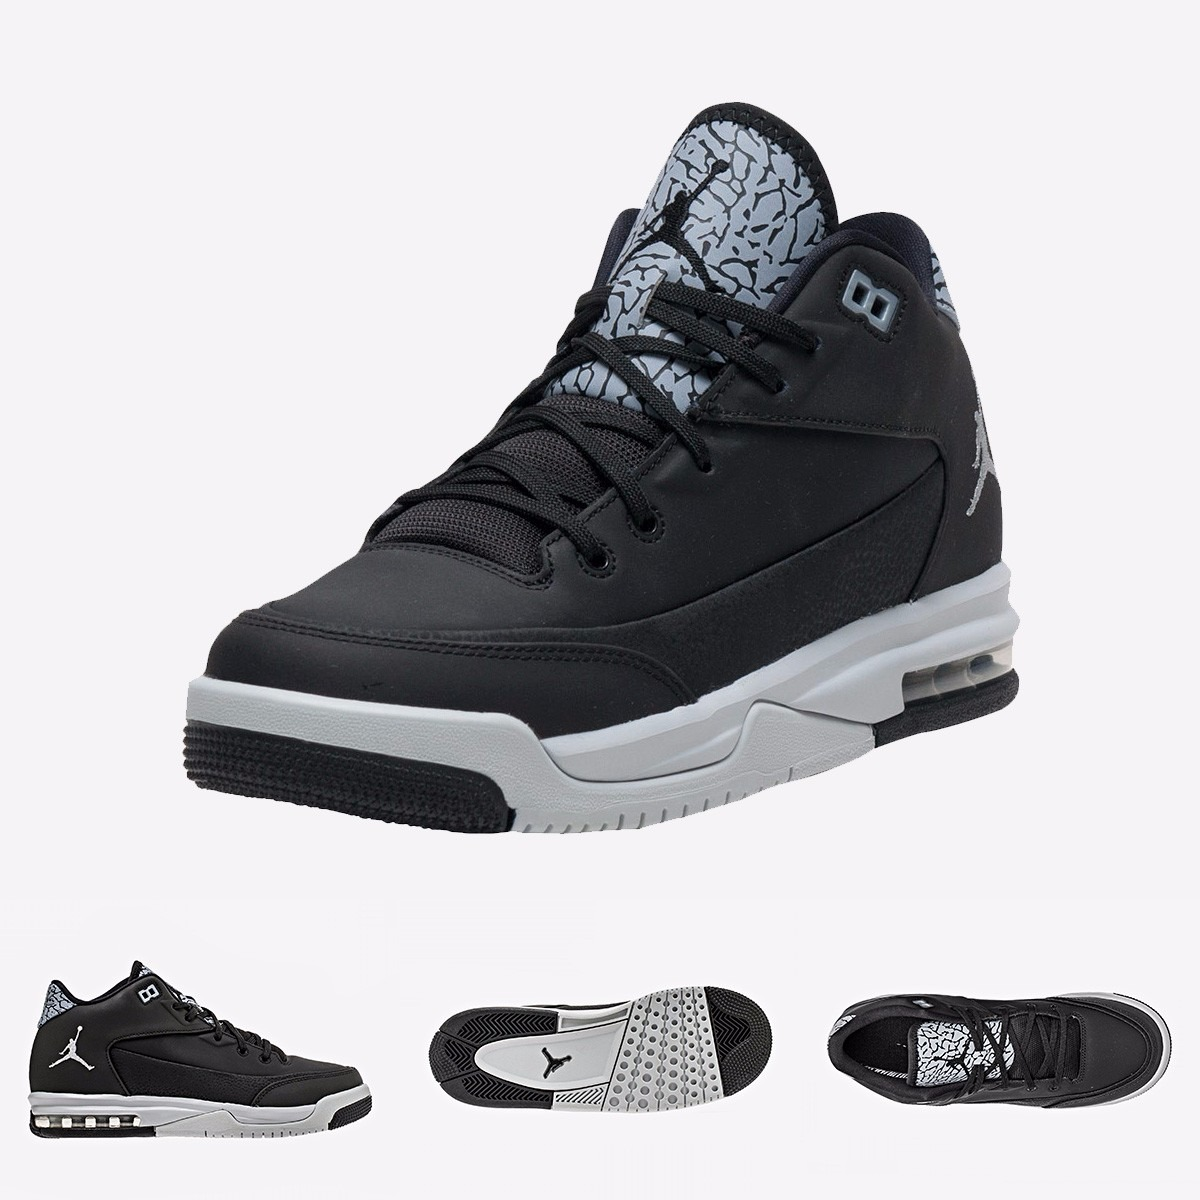 grande vente b1f2a e95d8 Nike Air Jordan Flight Origin 3 | Negro 100% Original Max